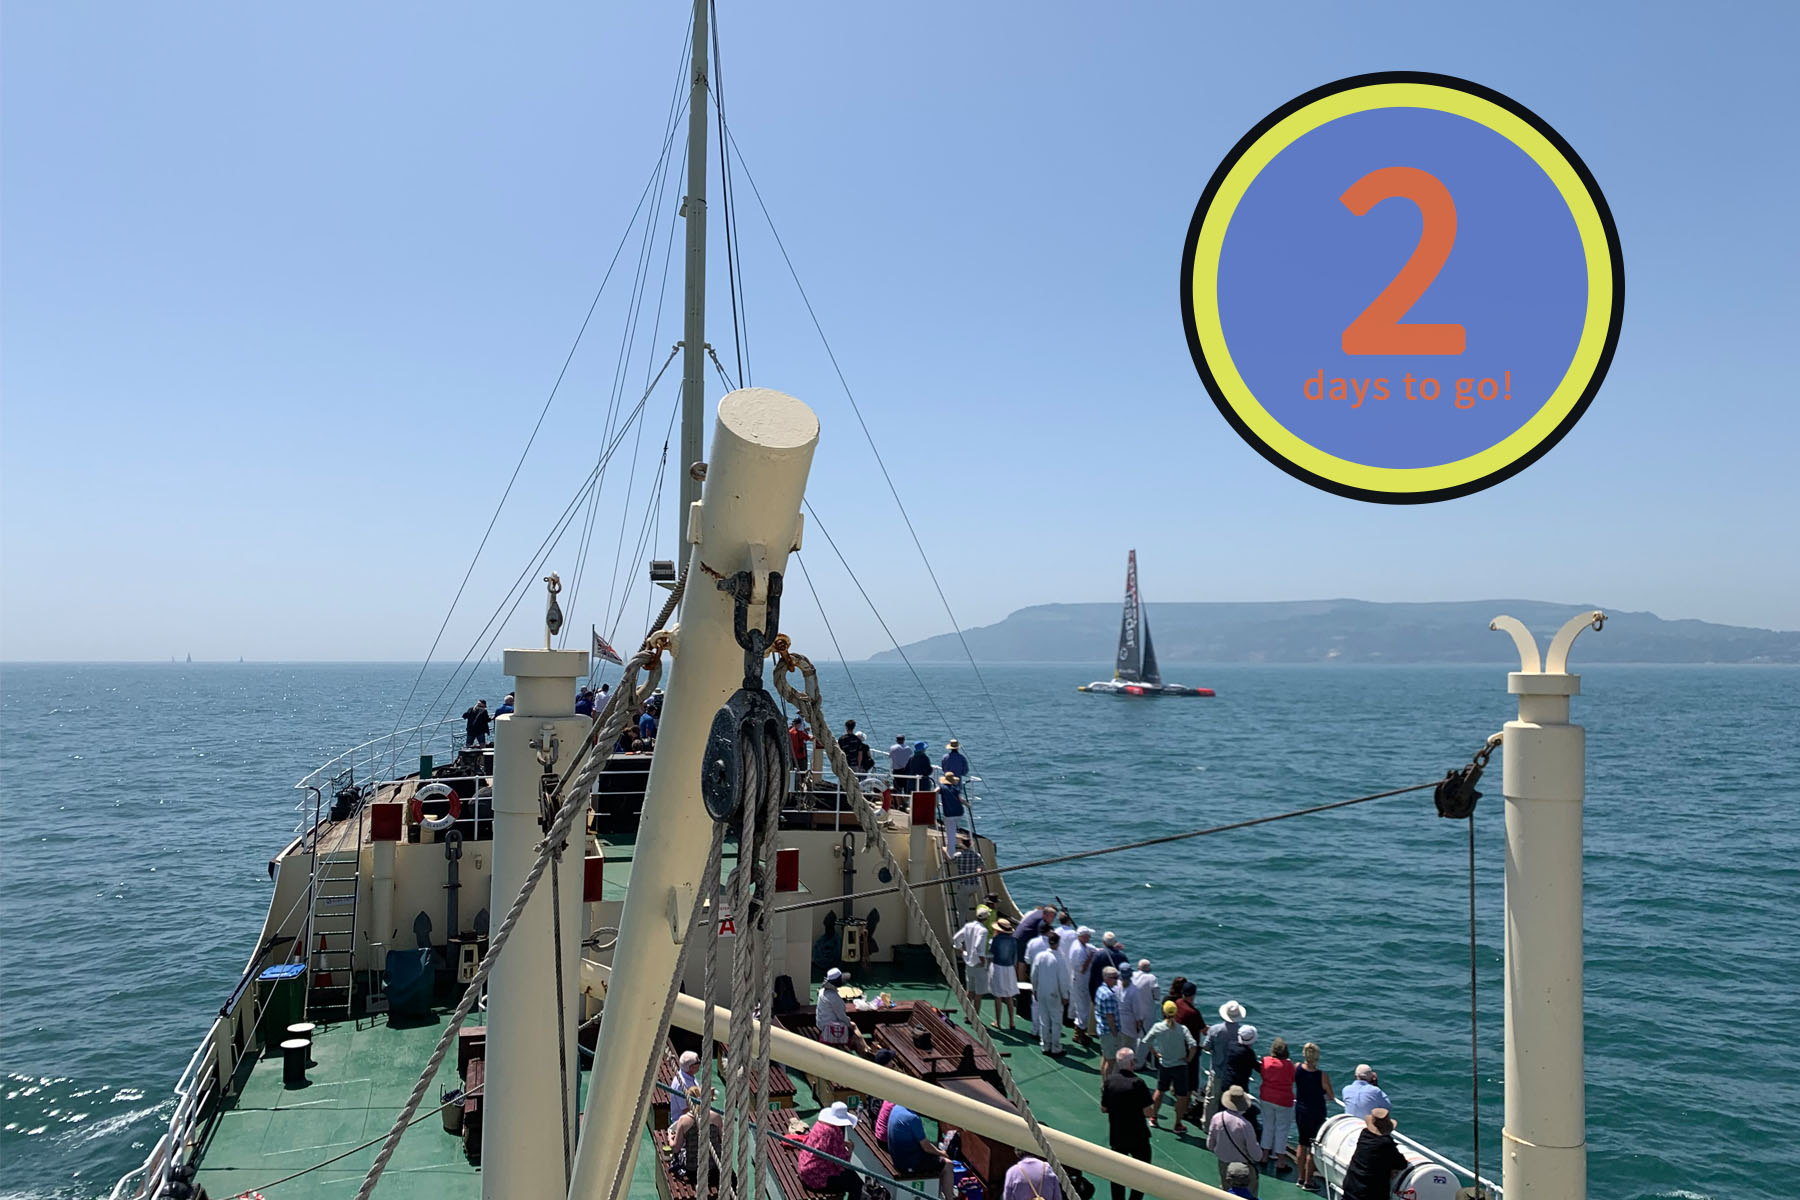 Shieldhall sailing programme 2 days to go (c) SS Shieldhall